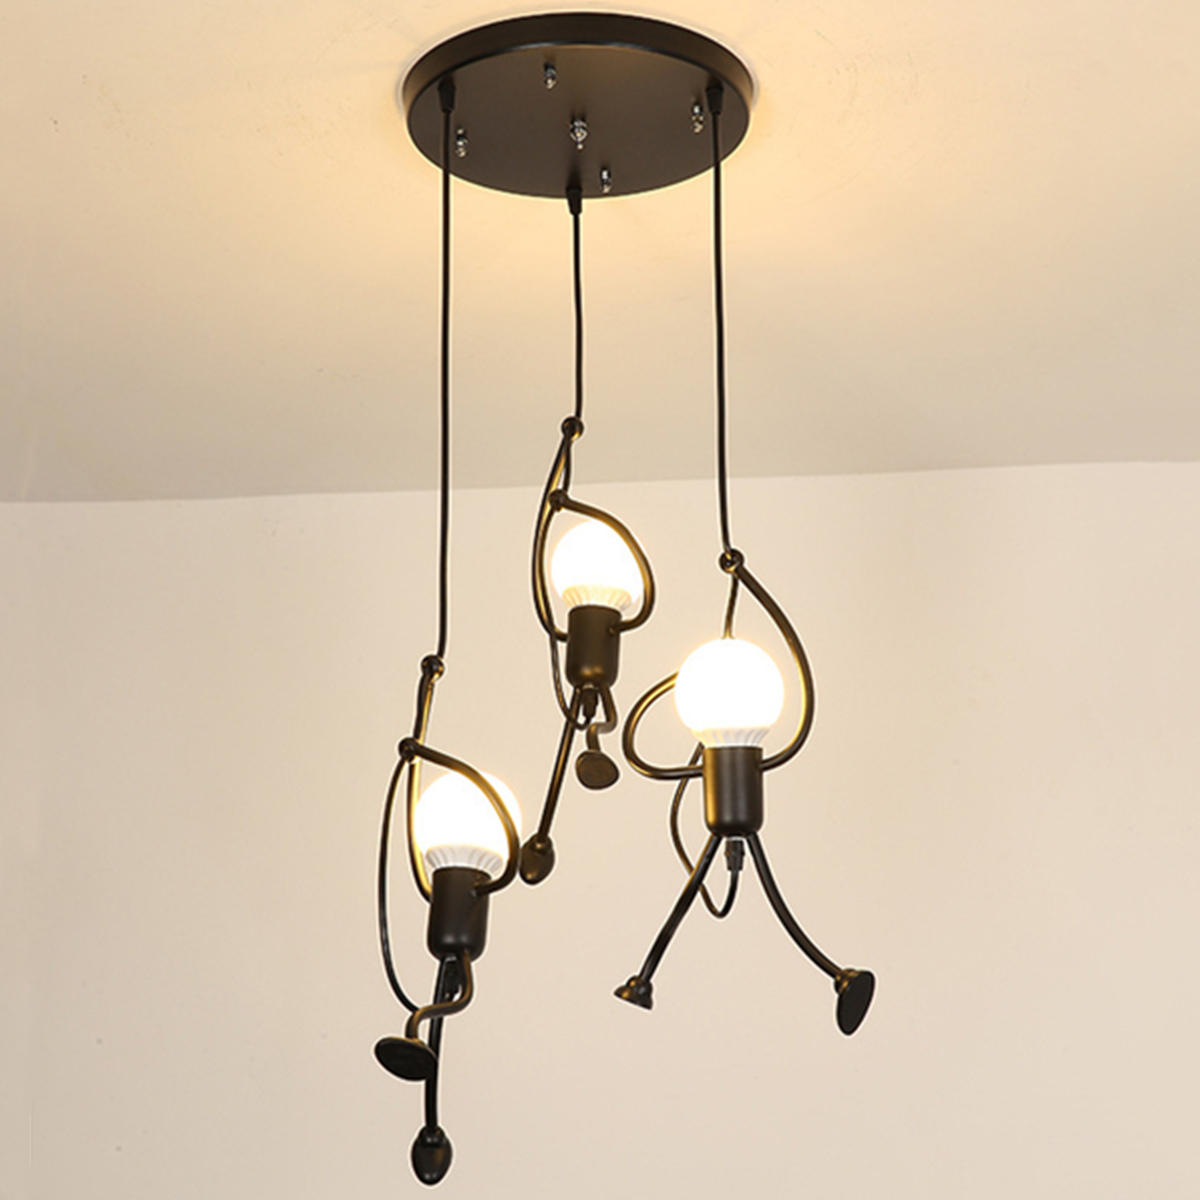 Modern Novelty Chandelier Lights Restaurant Bar Lamp Living Room Coffee Shop Glass Hanging Light Fixtures Carefully Selected Materials Ceiling Lights & Fans